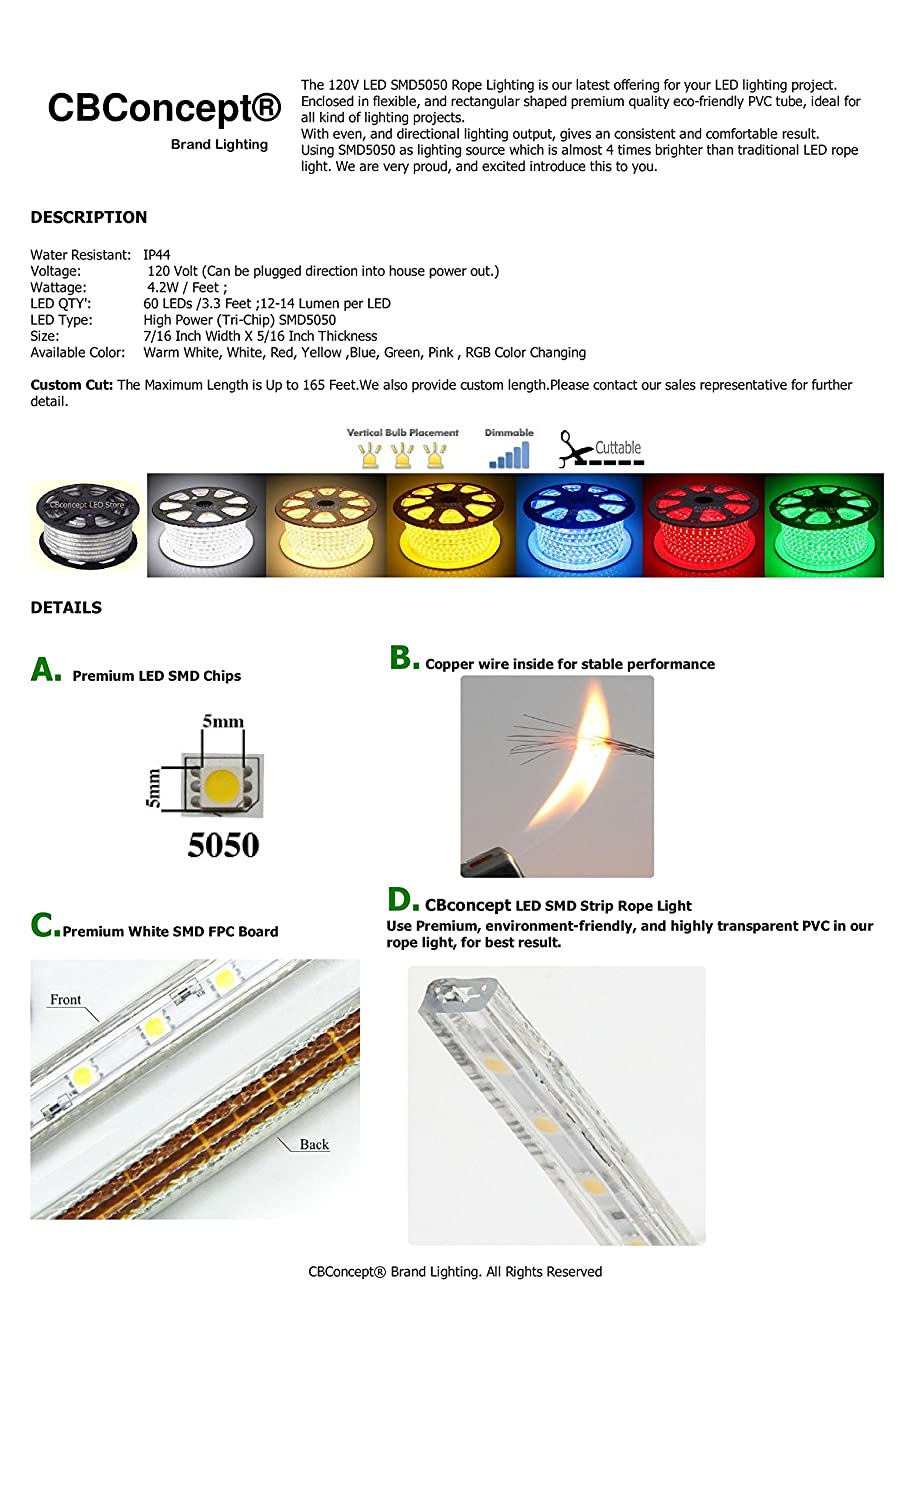 Dimmable Indoor//Outdoor Use, 4000K Soft White Ready to use 240 Units 5050 SMD LEDs Super Bright 3600 Lumen 110-120V AC Flexible Flat LED Strip Rope Light CBconcept UL Listed 13 Feet